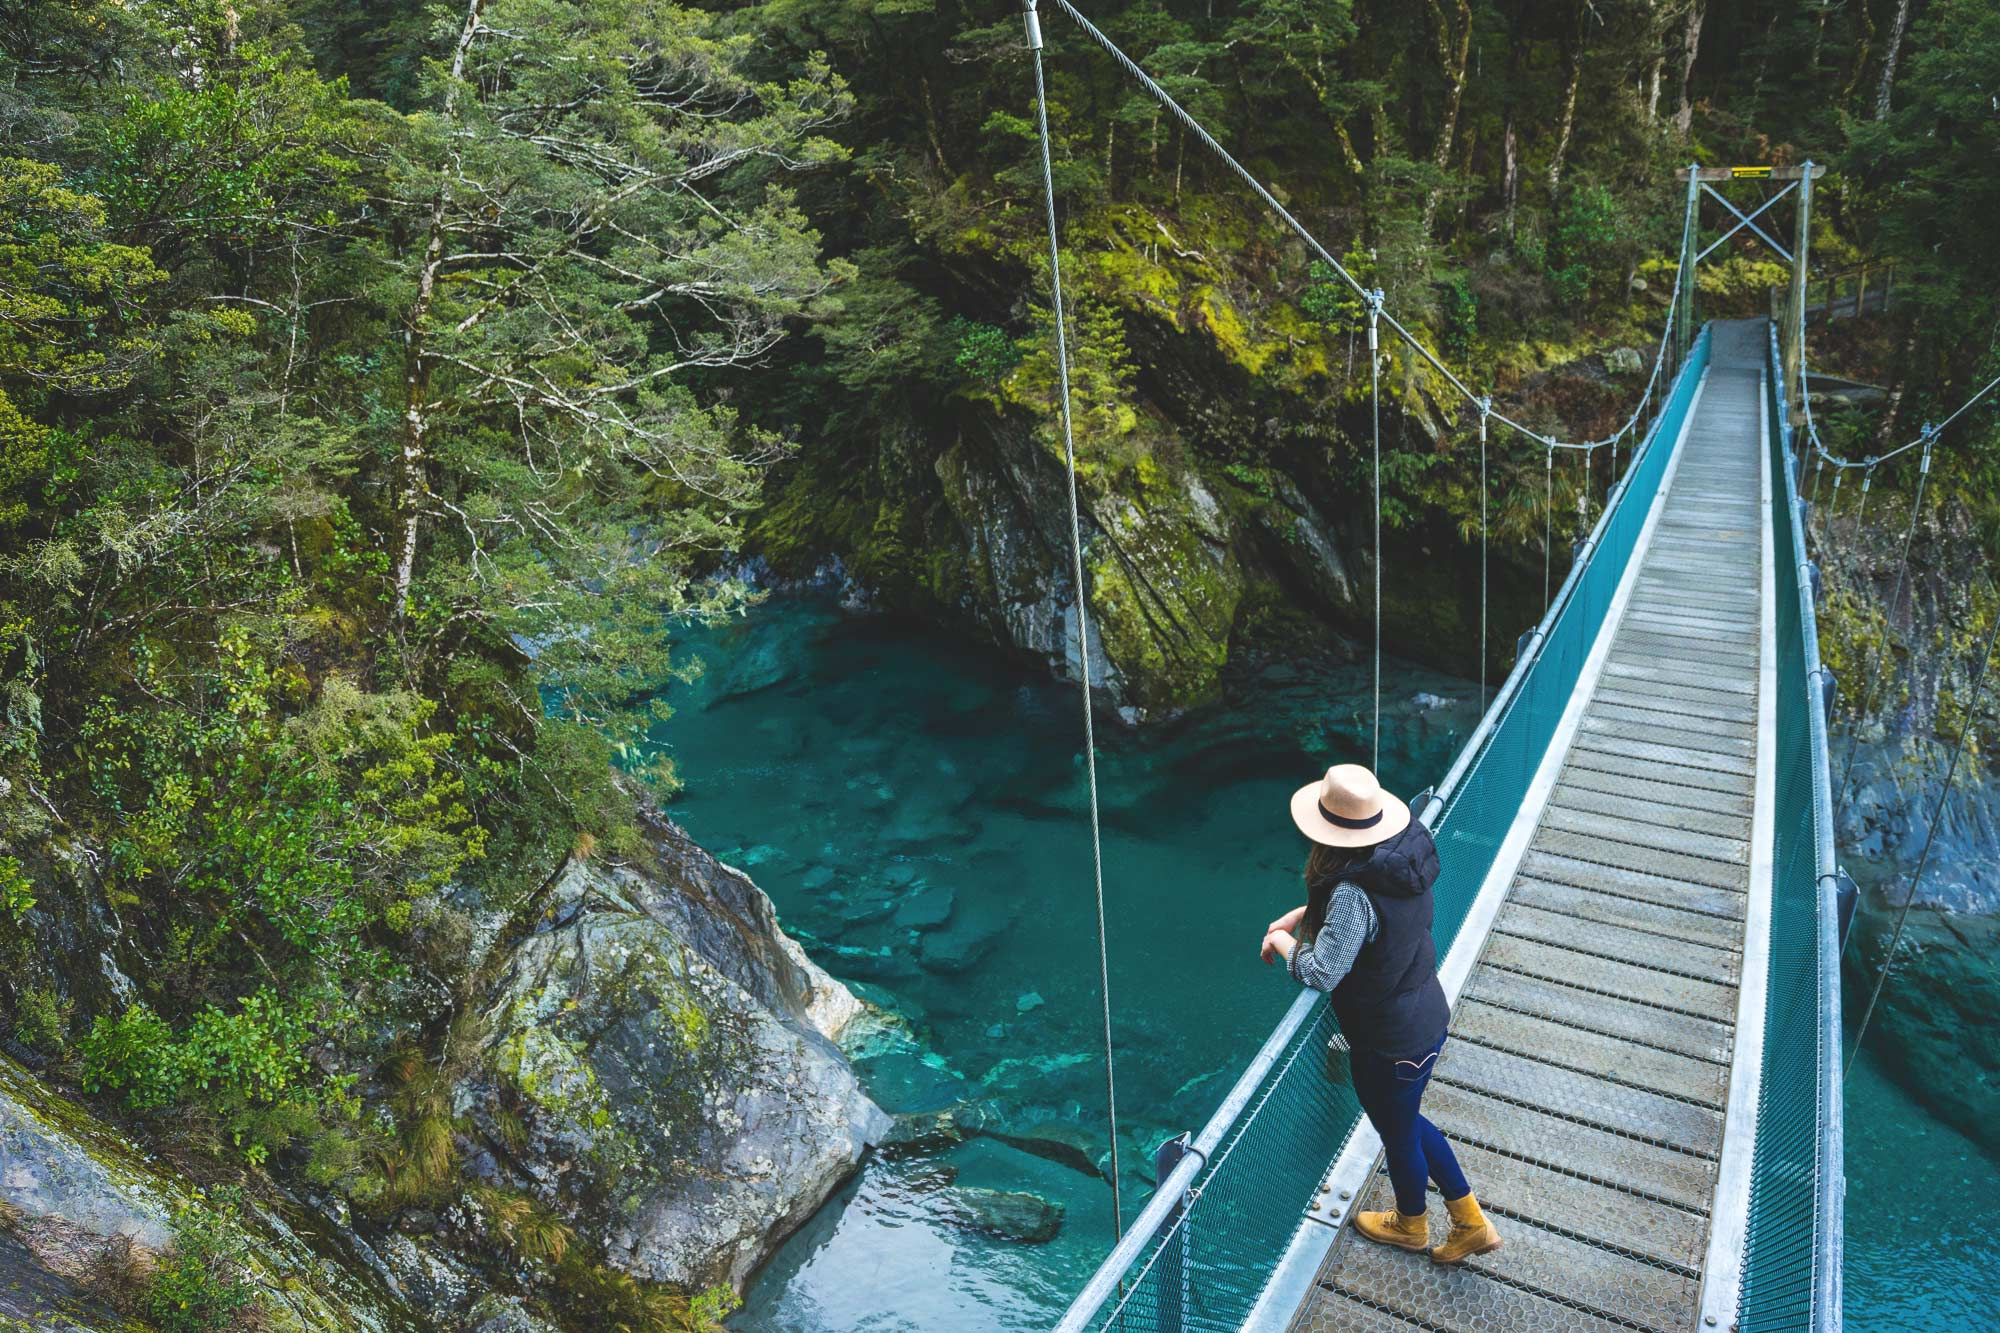 Bridge overlooking Blue pools in Wanaka, NZ